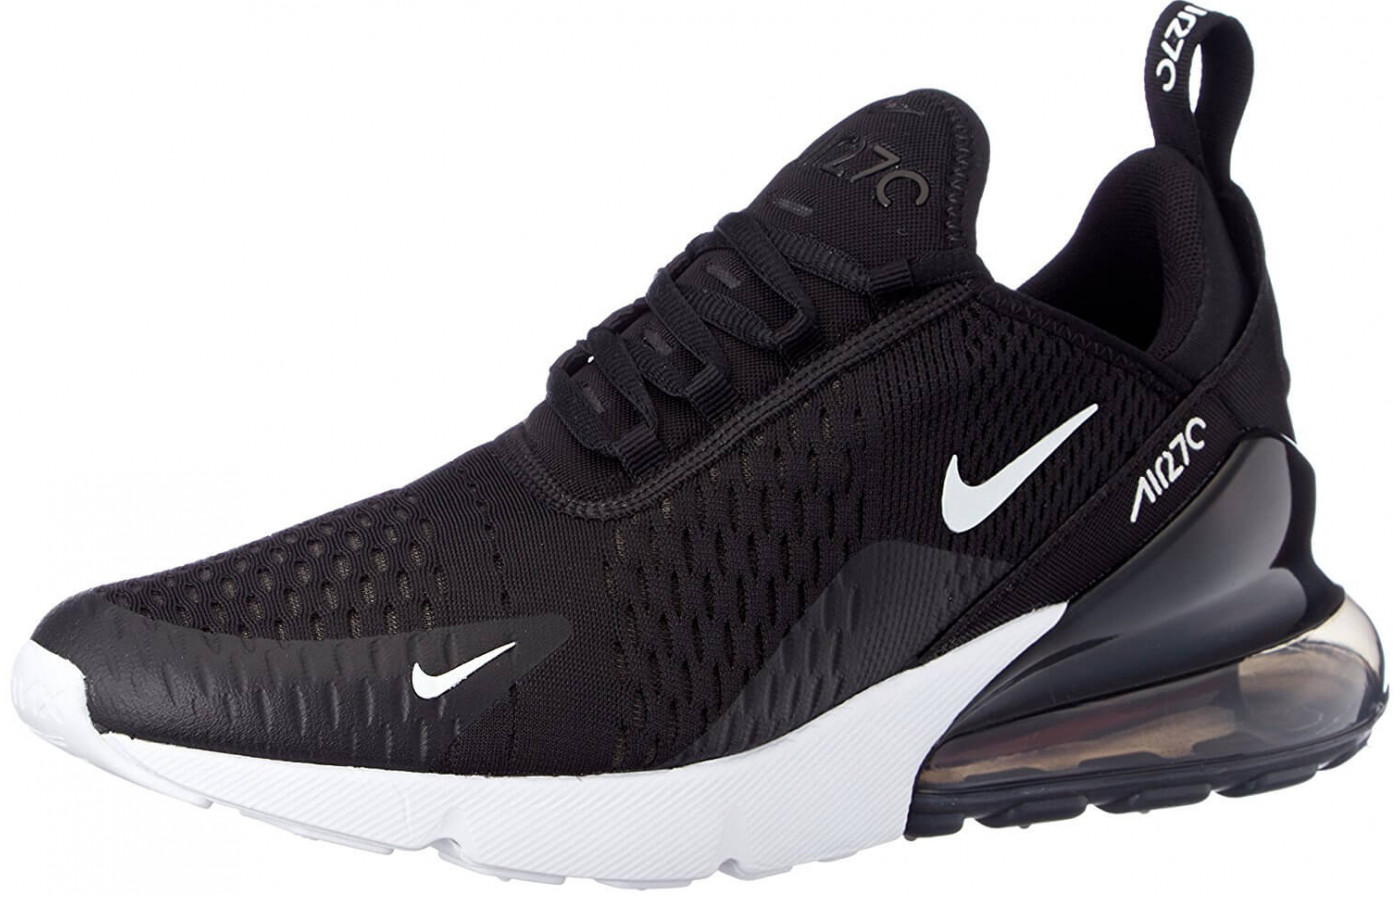 5b393e8bf9 Nike Air Max 270 Reviewed - To Buy or Not in June 2019?